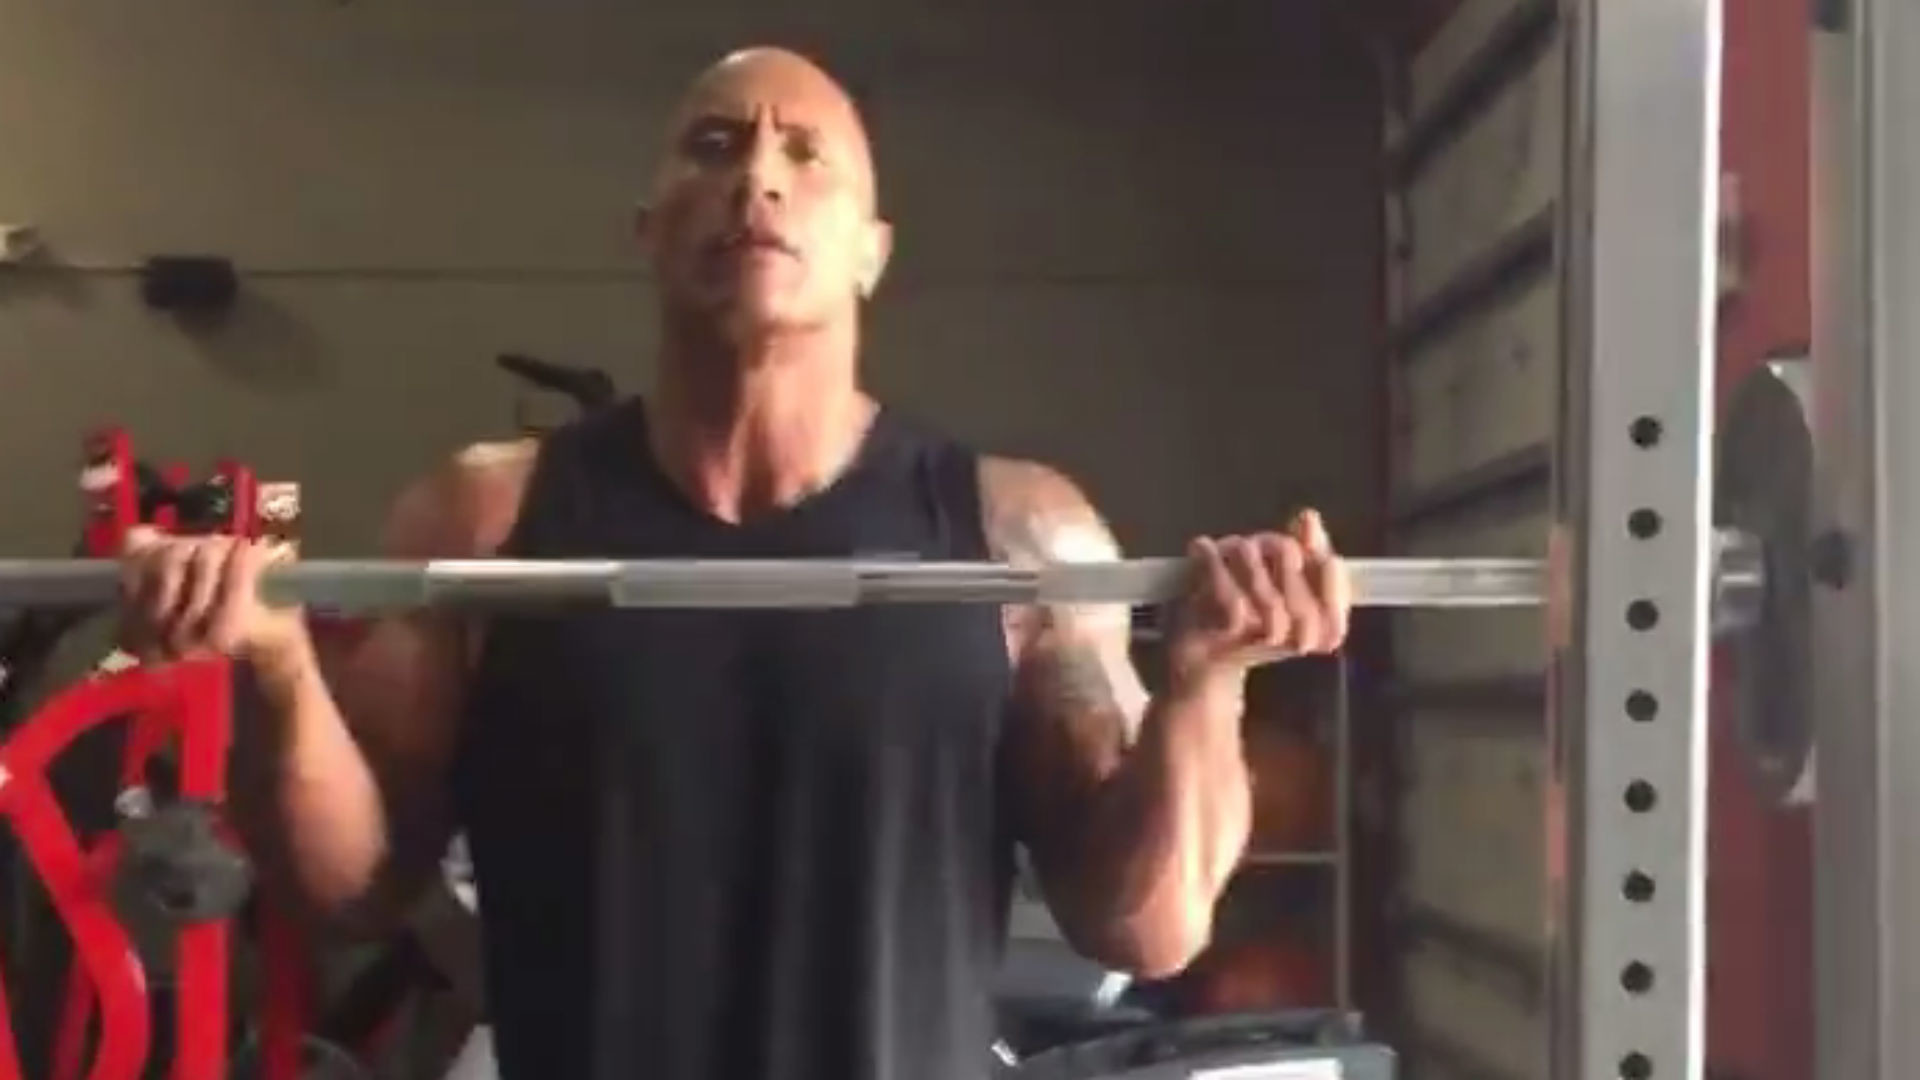 The Rock does crazy workout during first Facebook Live stream   Other  Sports   Sporting News